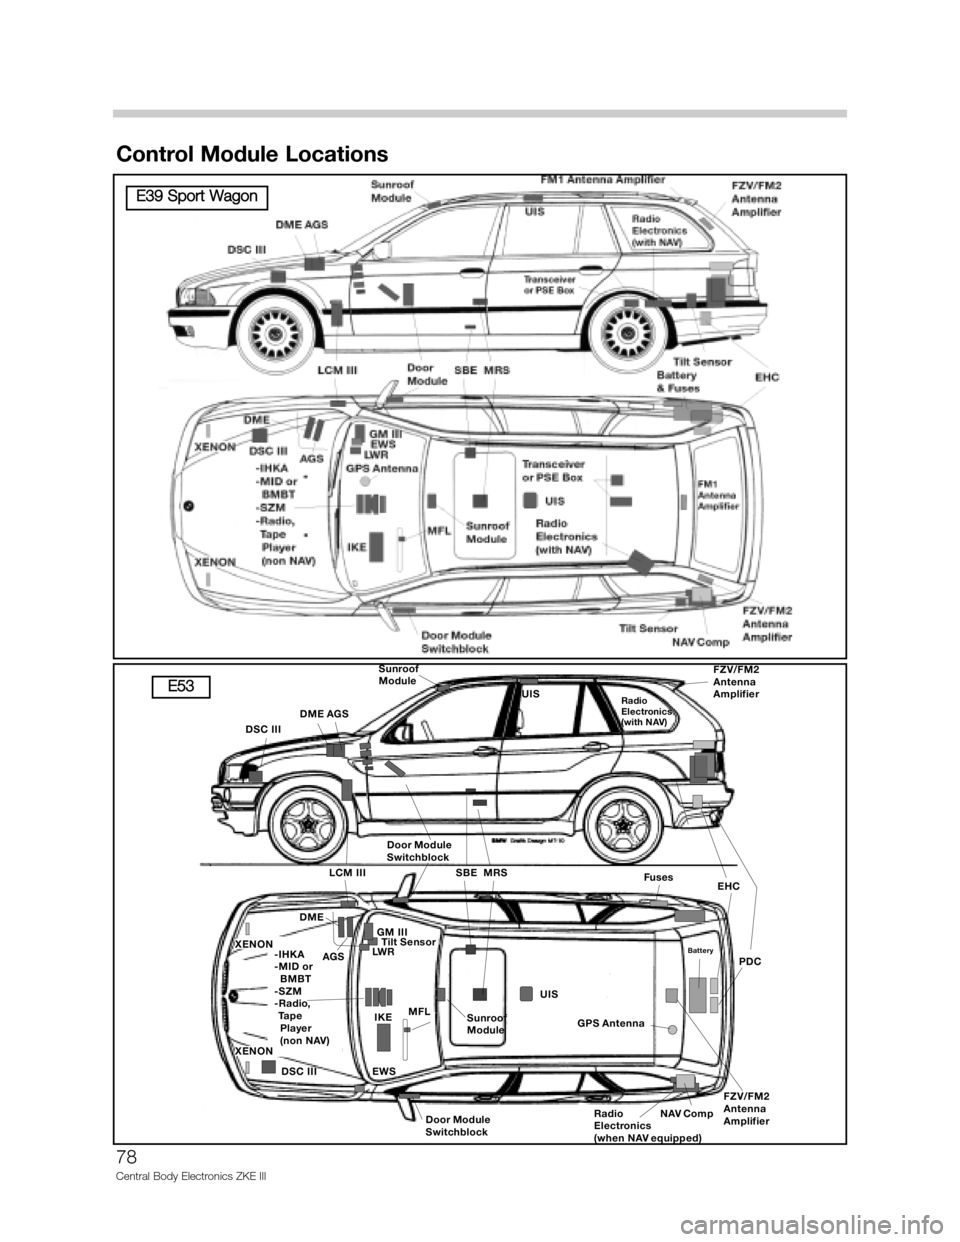 Bmw 530i 1998 E39 Central Body Electronics Zke Manual Engine Module Wiring Diagram Page 78 Control Locations